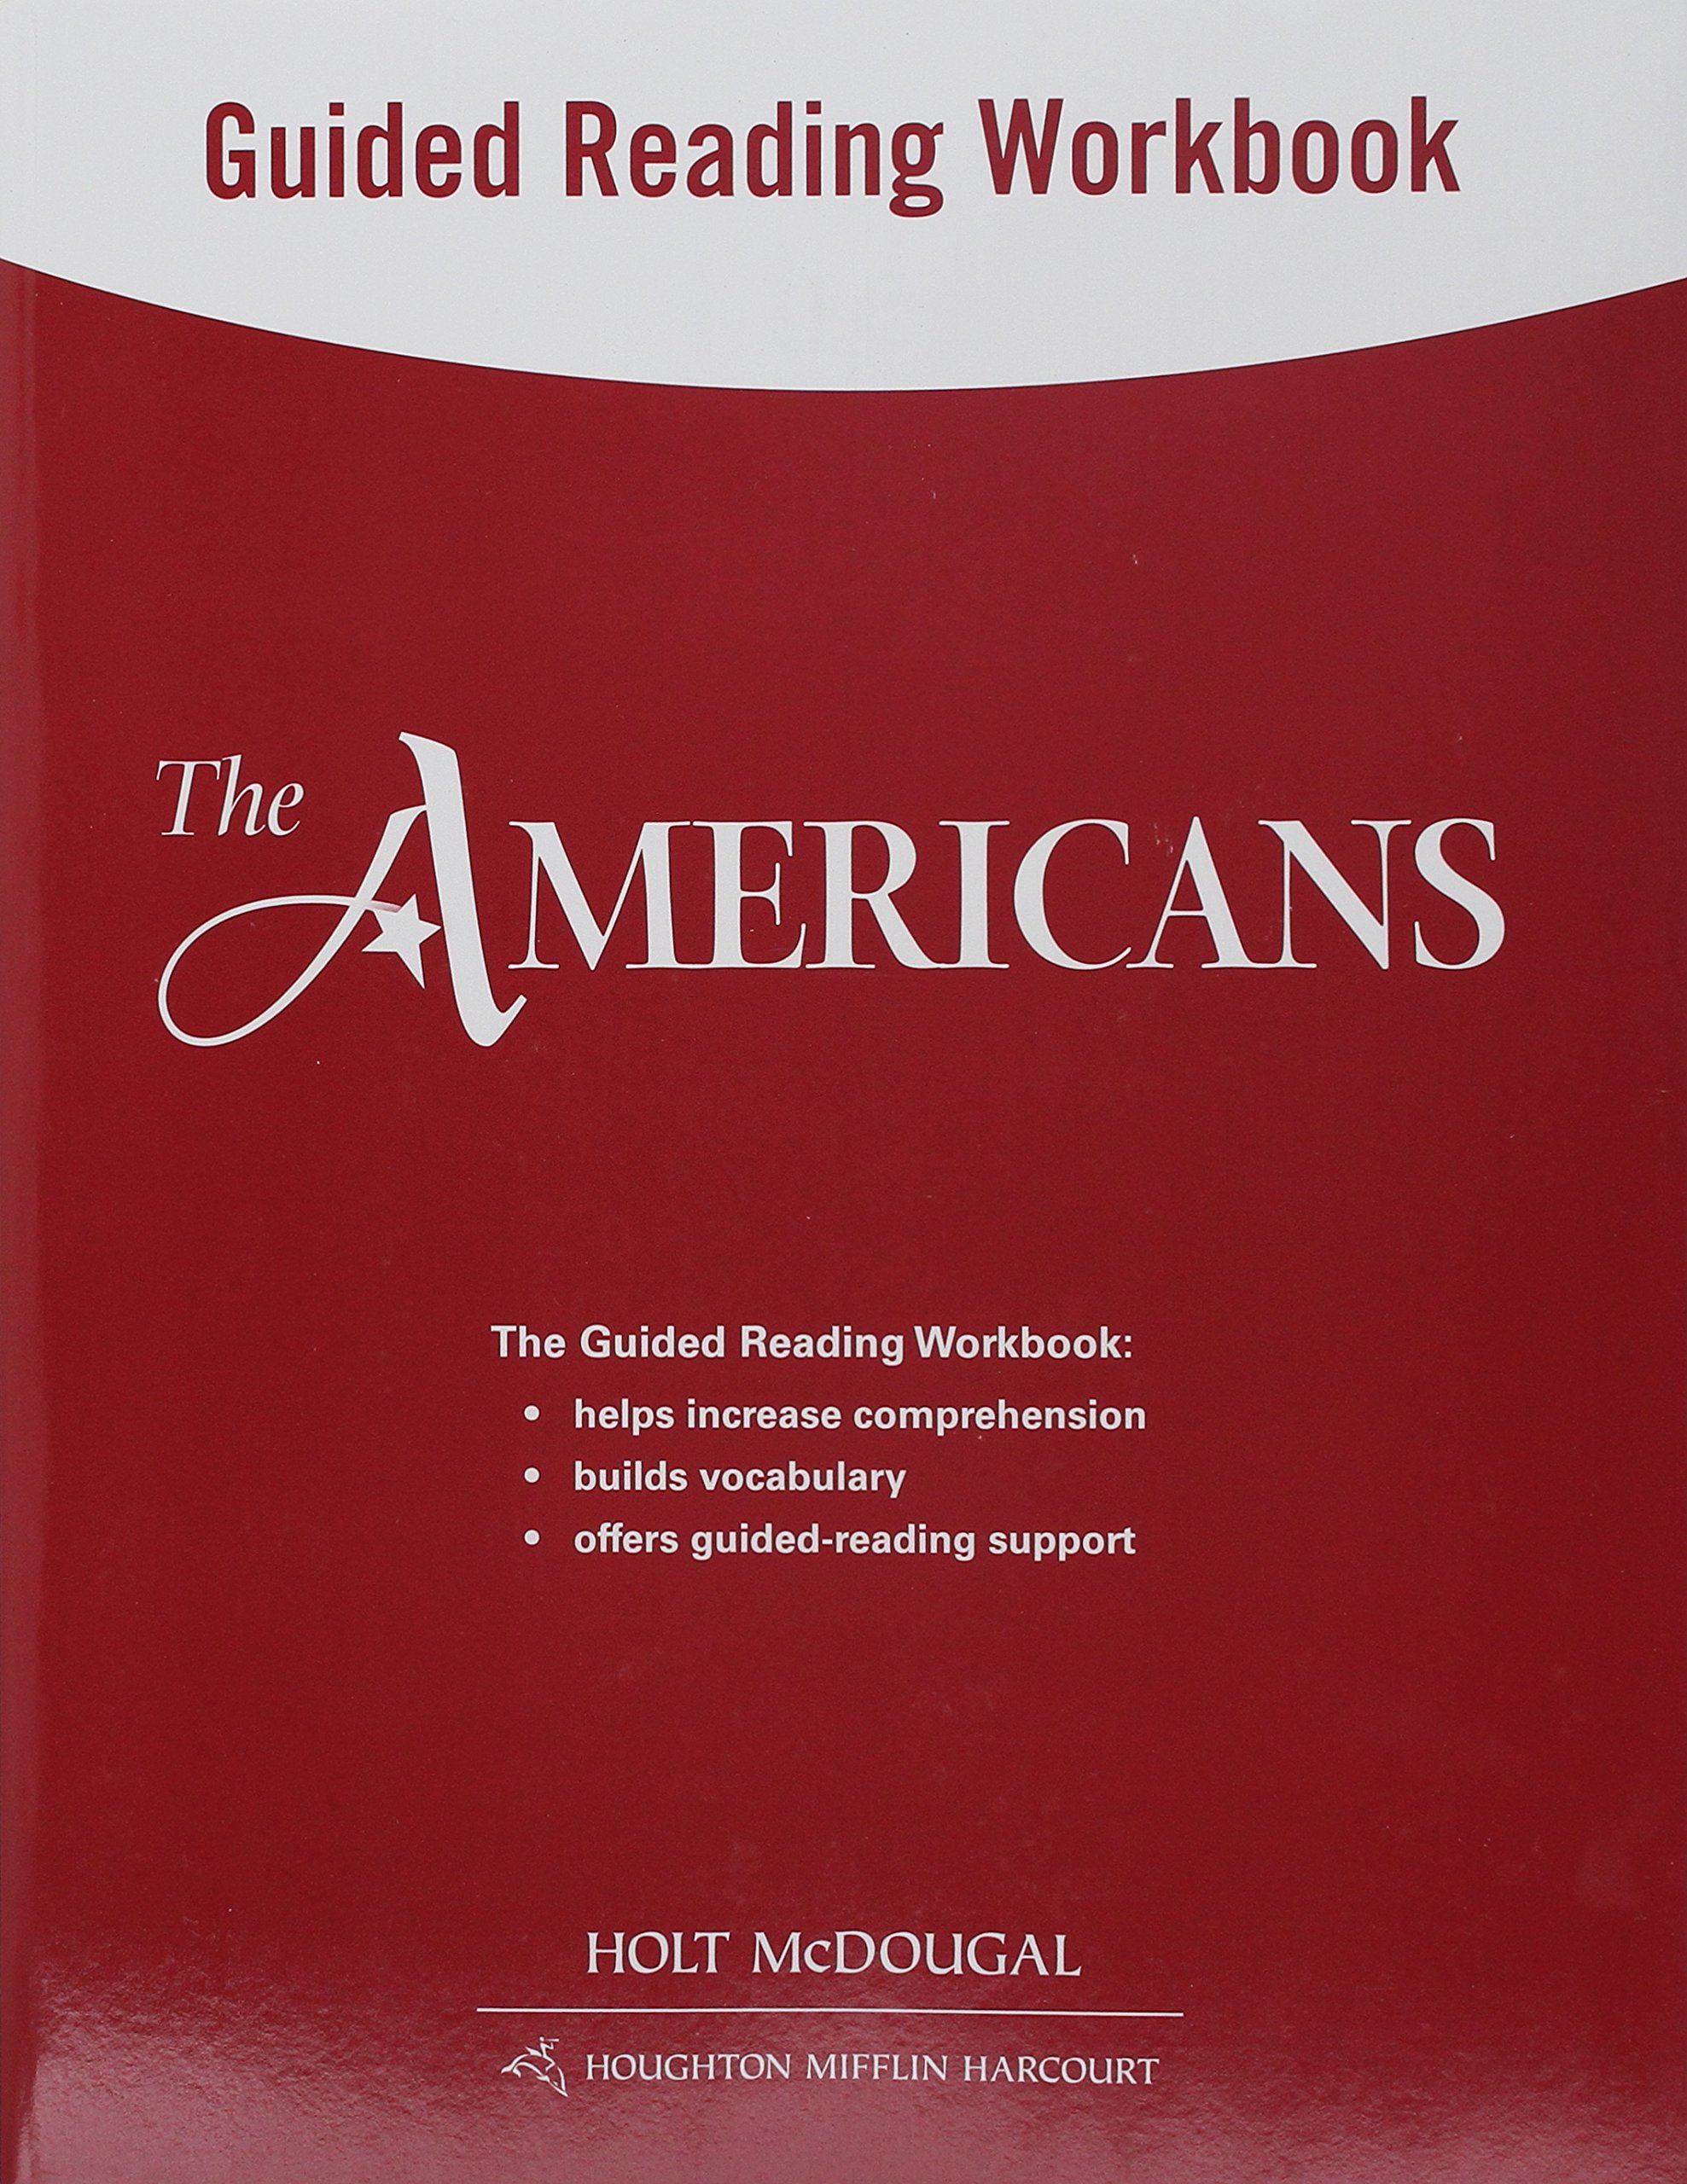 amazon com the americans guided reading workbook survey rh amazon com McDougal Animated McDougal Lubbock